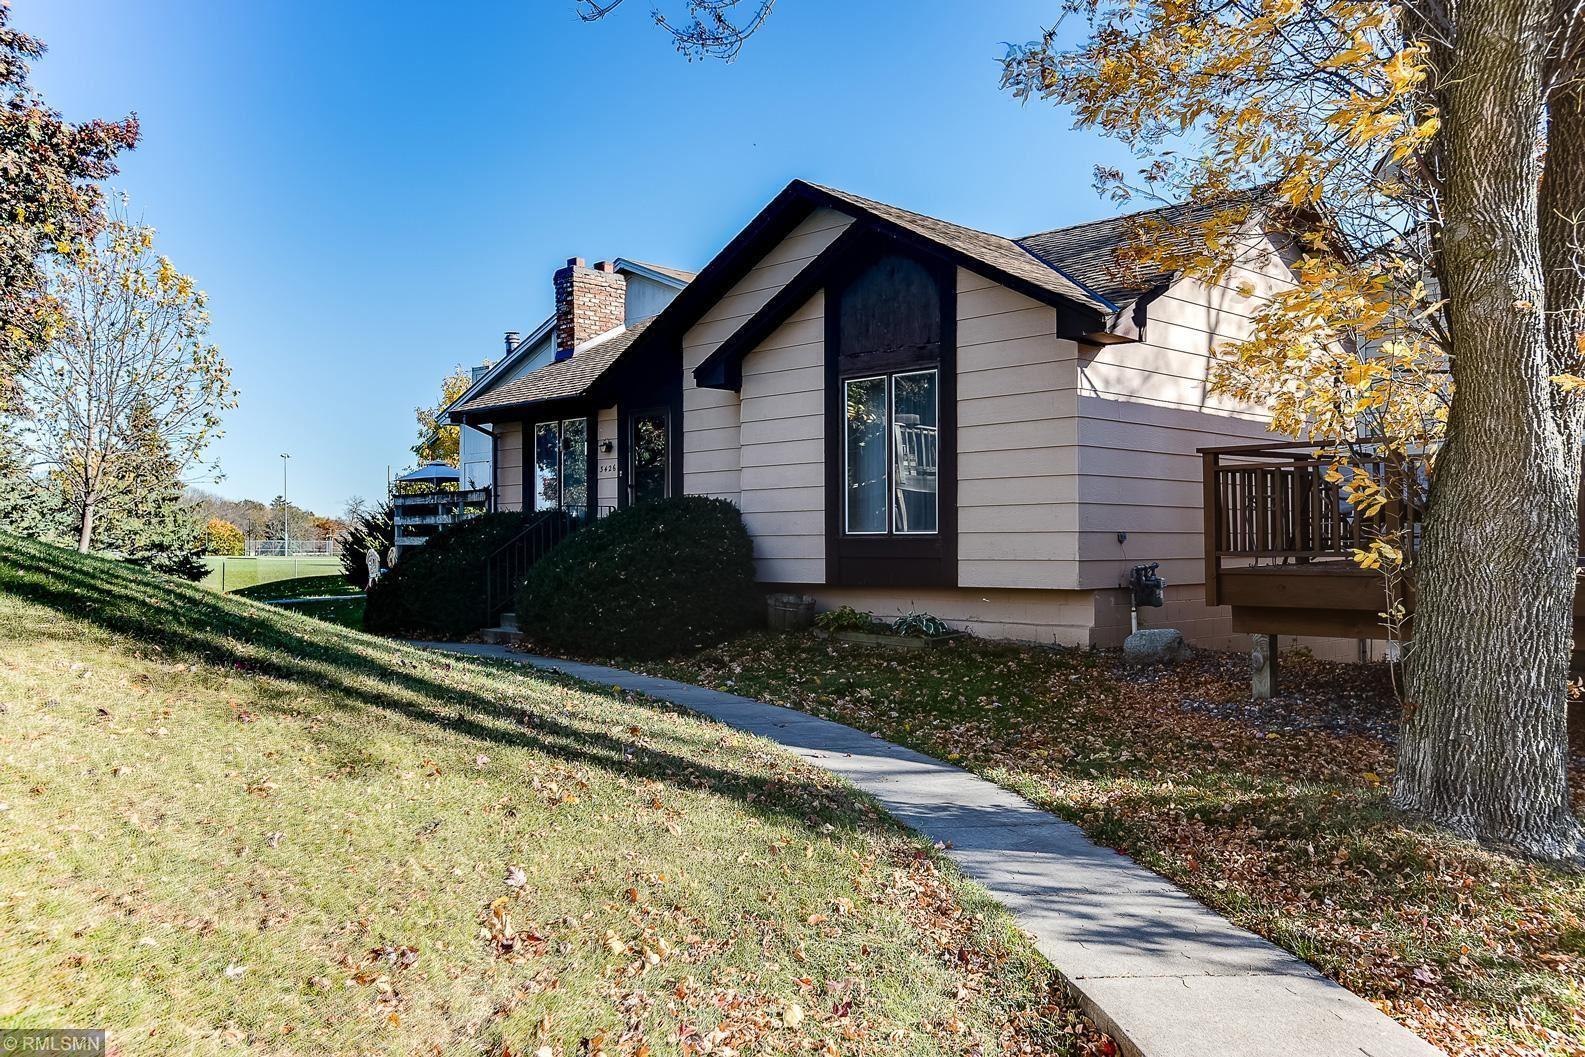 3426 Pilgrim Lane N, Plymouth, MN 55441 - MLS#: 5673891